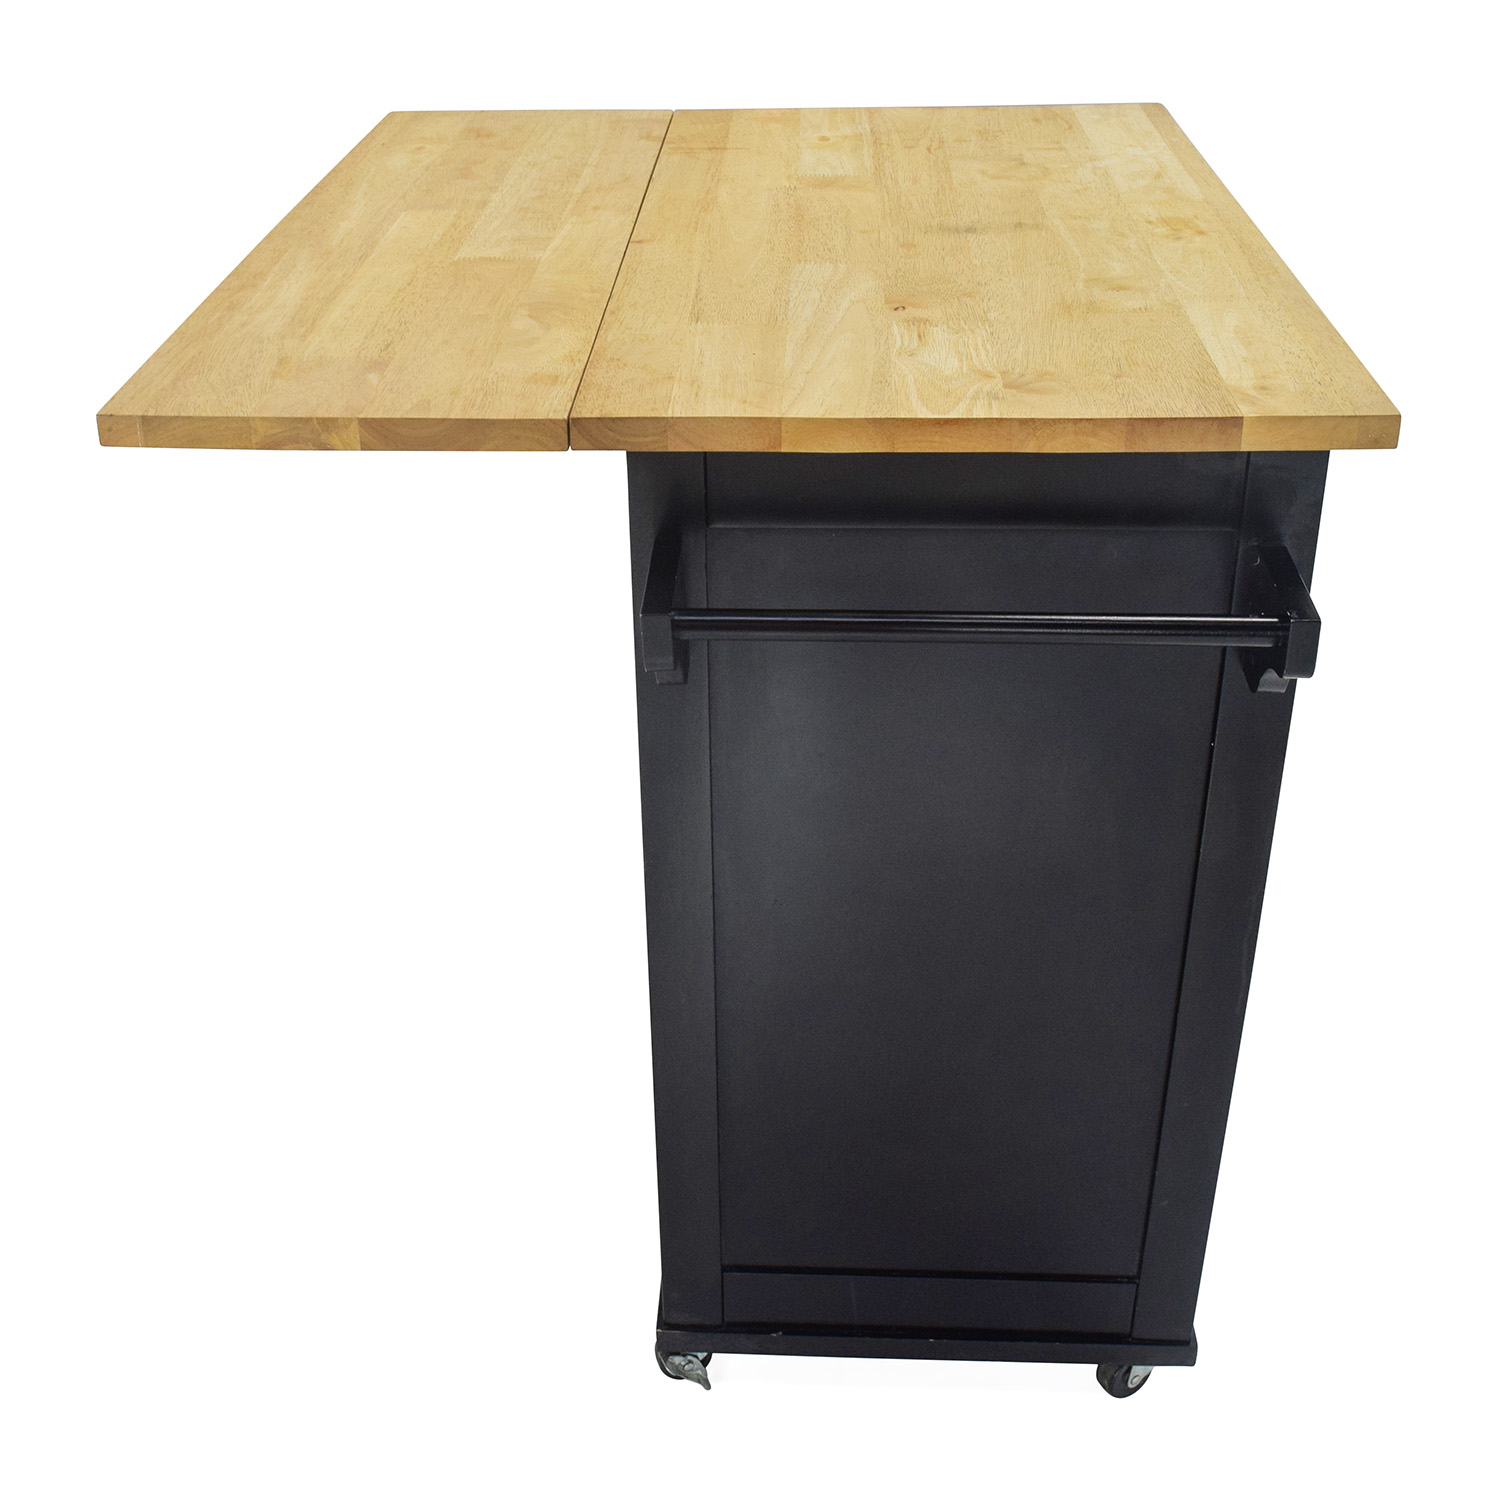 54 Off Crate Barrel Crate And Barrel Kitchen Island Tables